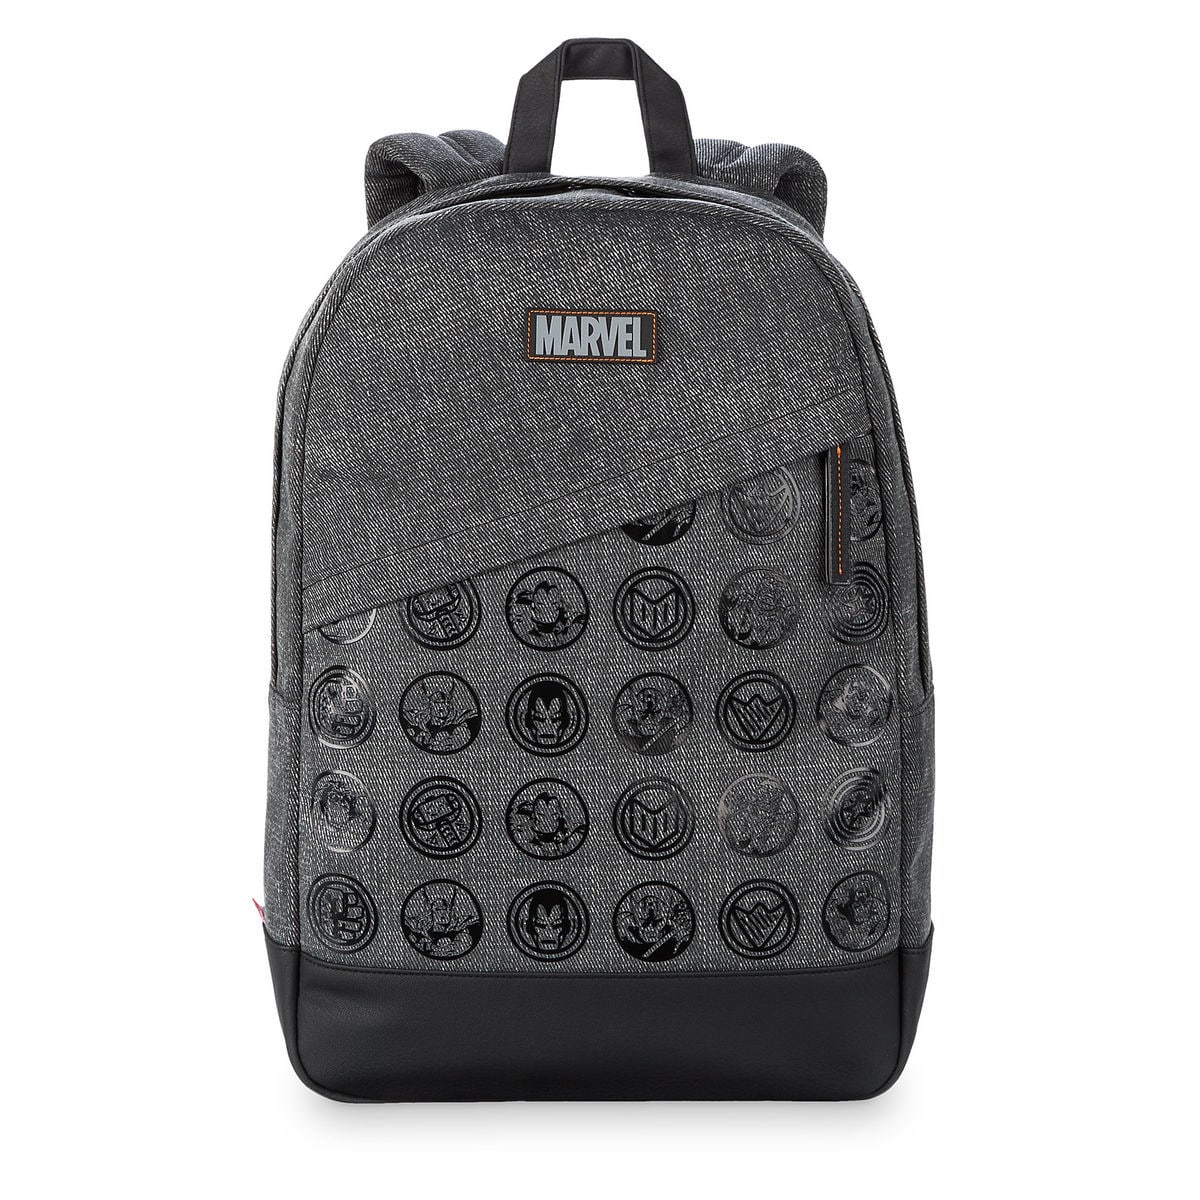 Product Image Of Marvel Comics Avengers Backpack 1